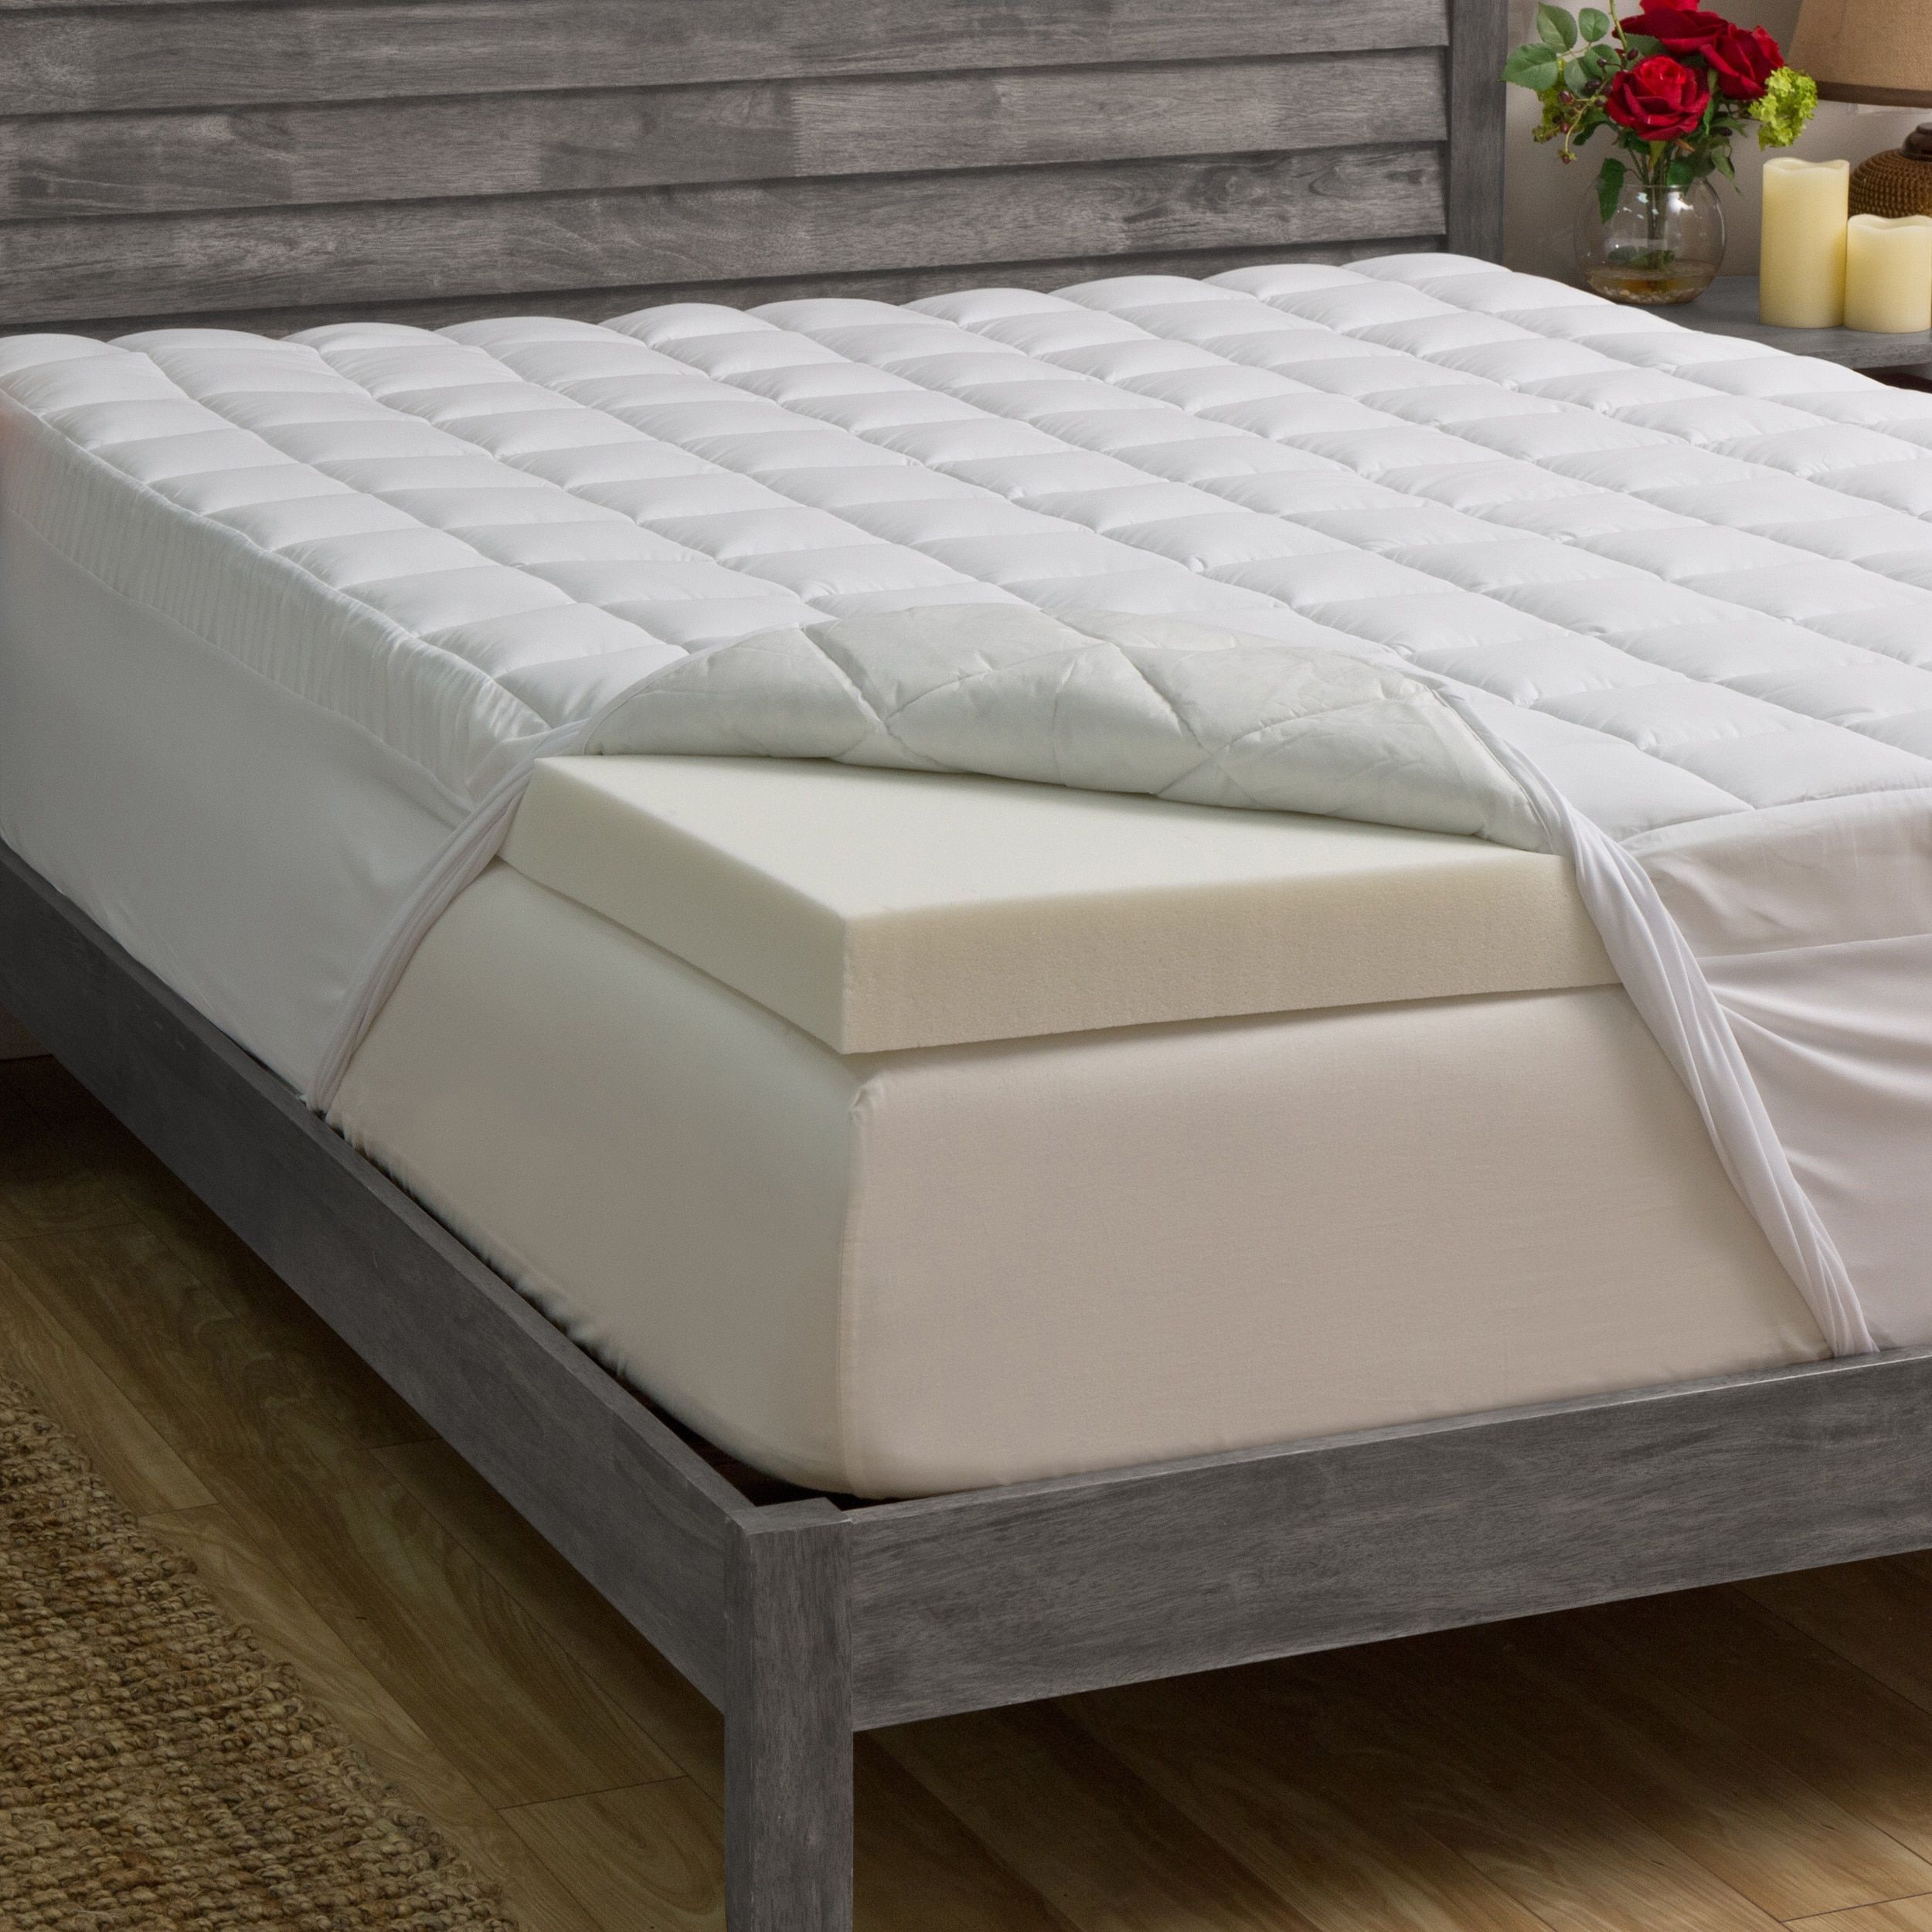 Grande Hotel Collection 1 5 Inch Fiber And 4 Inch Memory Foam Mattress Topper Memory Foam Mattress Topper Mattress Foam Mattress